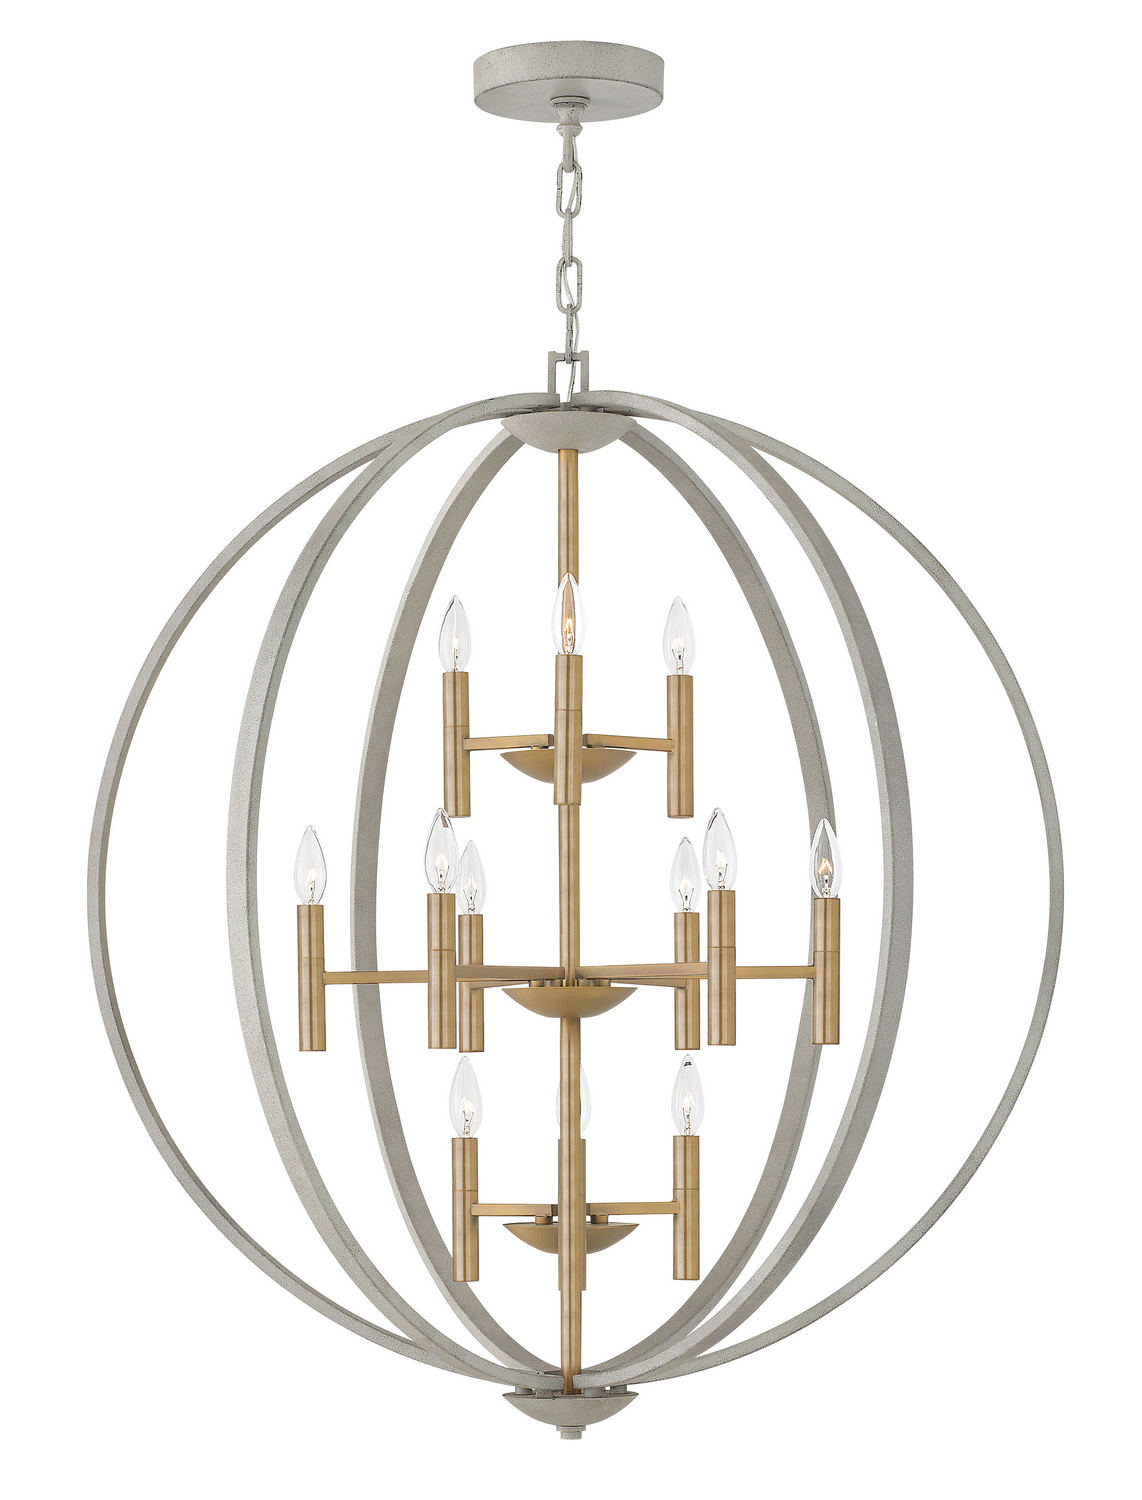 12 Light Foyer Pendant from the Euclid collection by Hinkley 3469CG